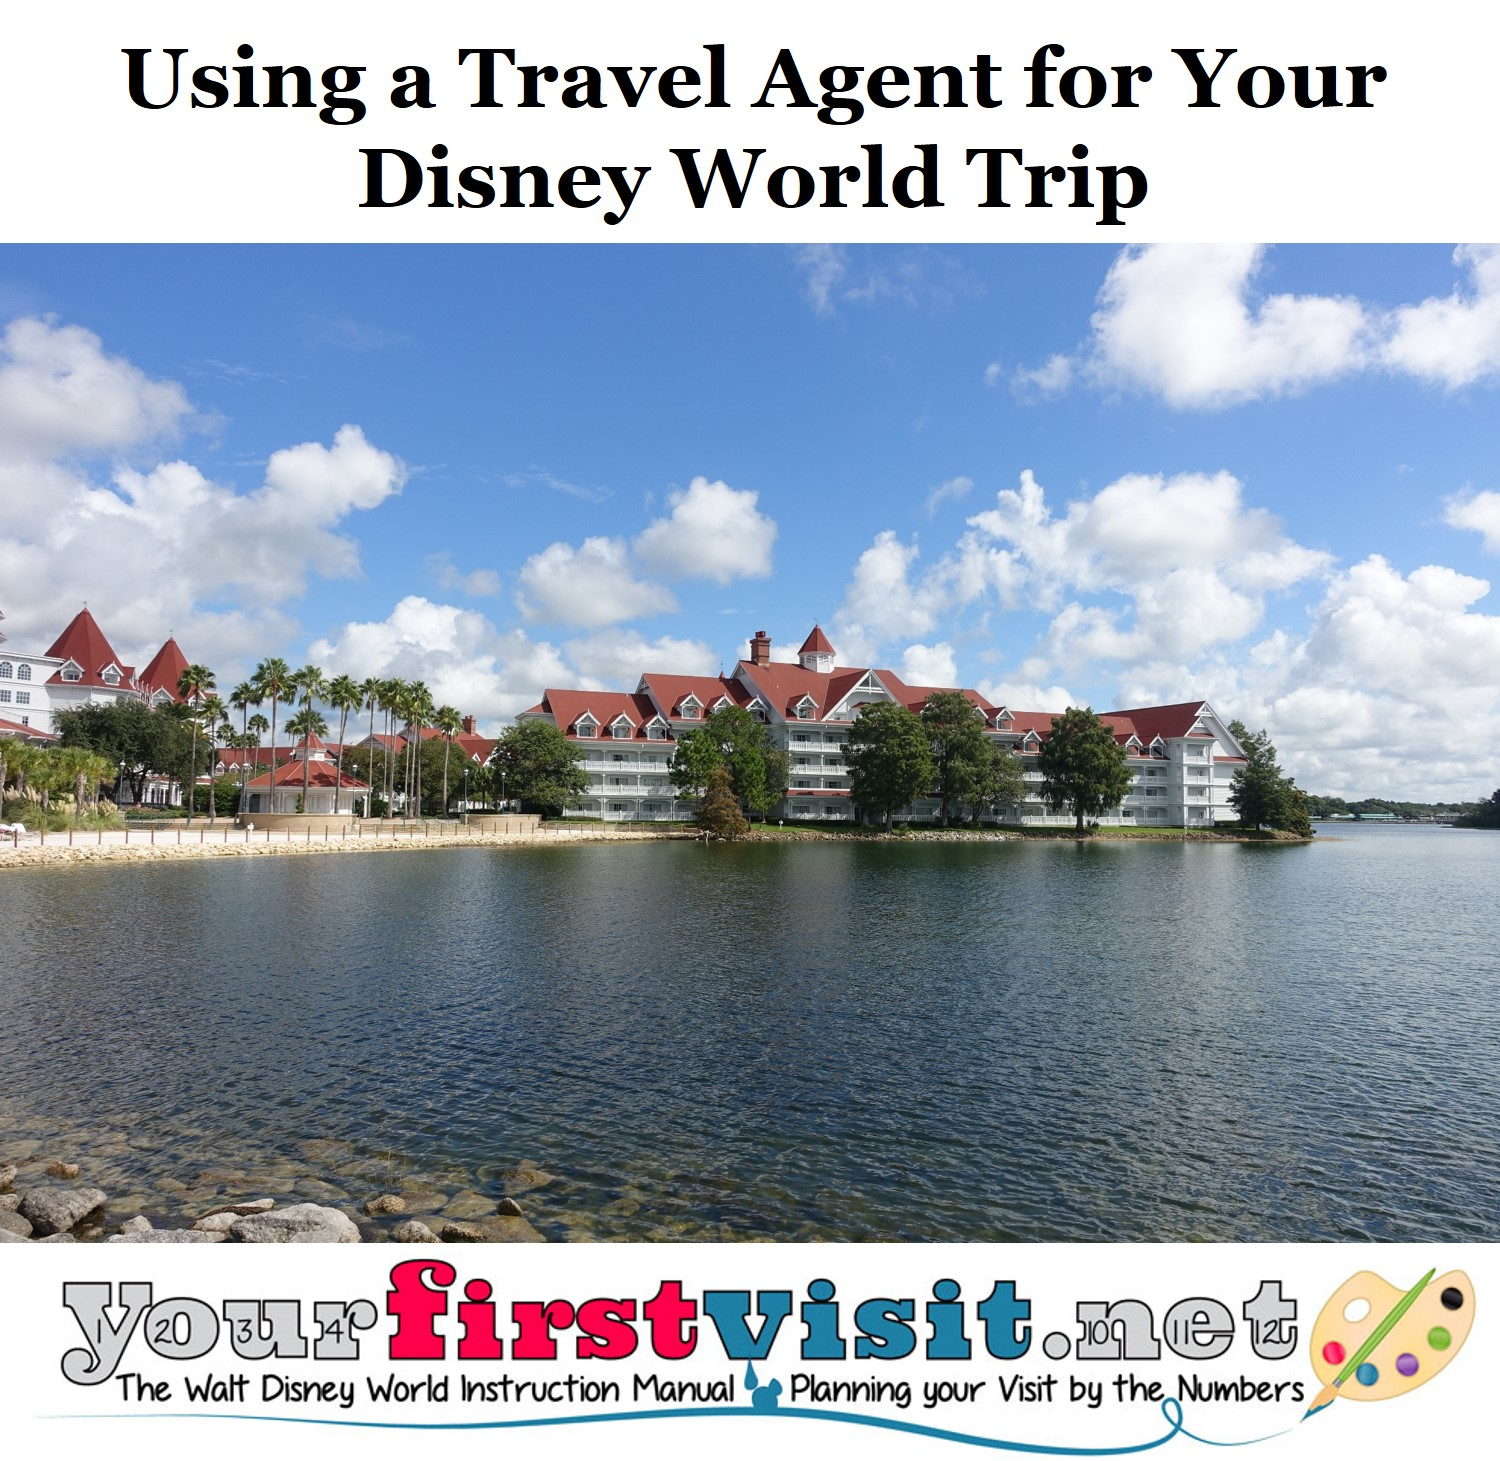 Travel Agents for Walt Disney World